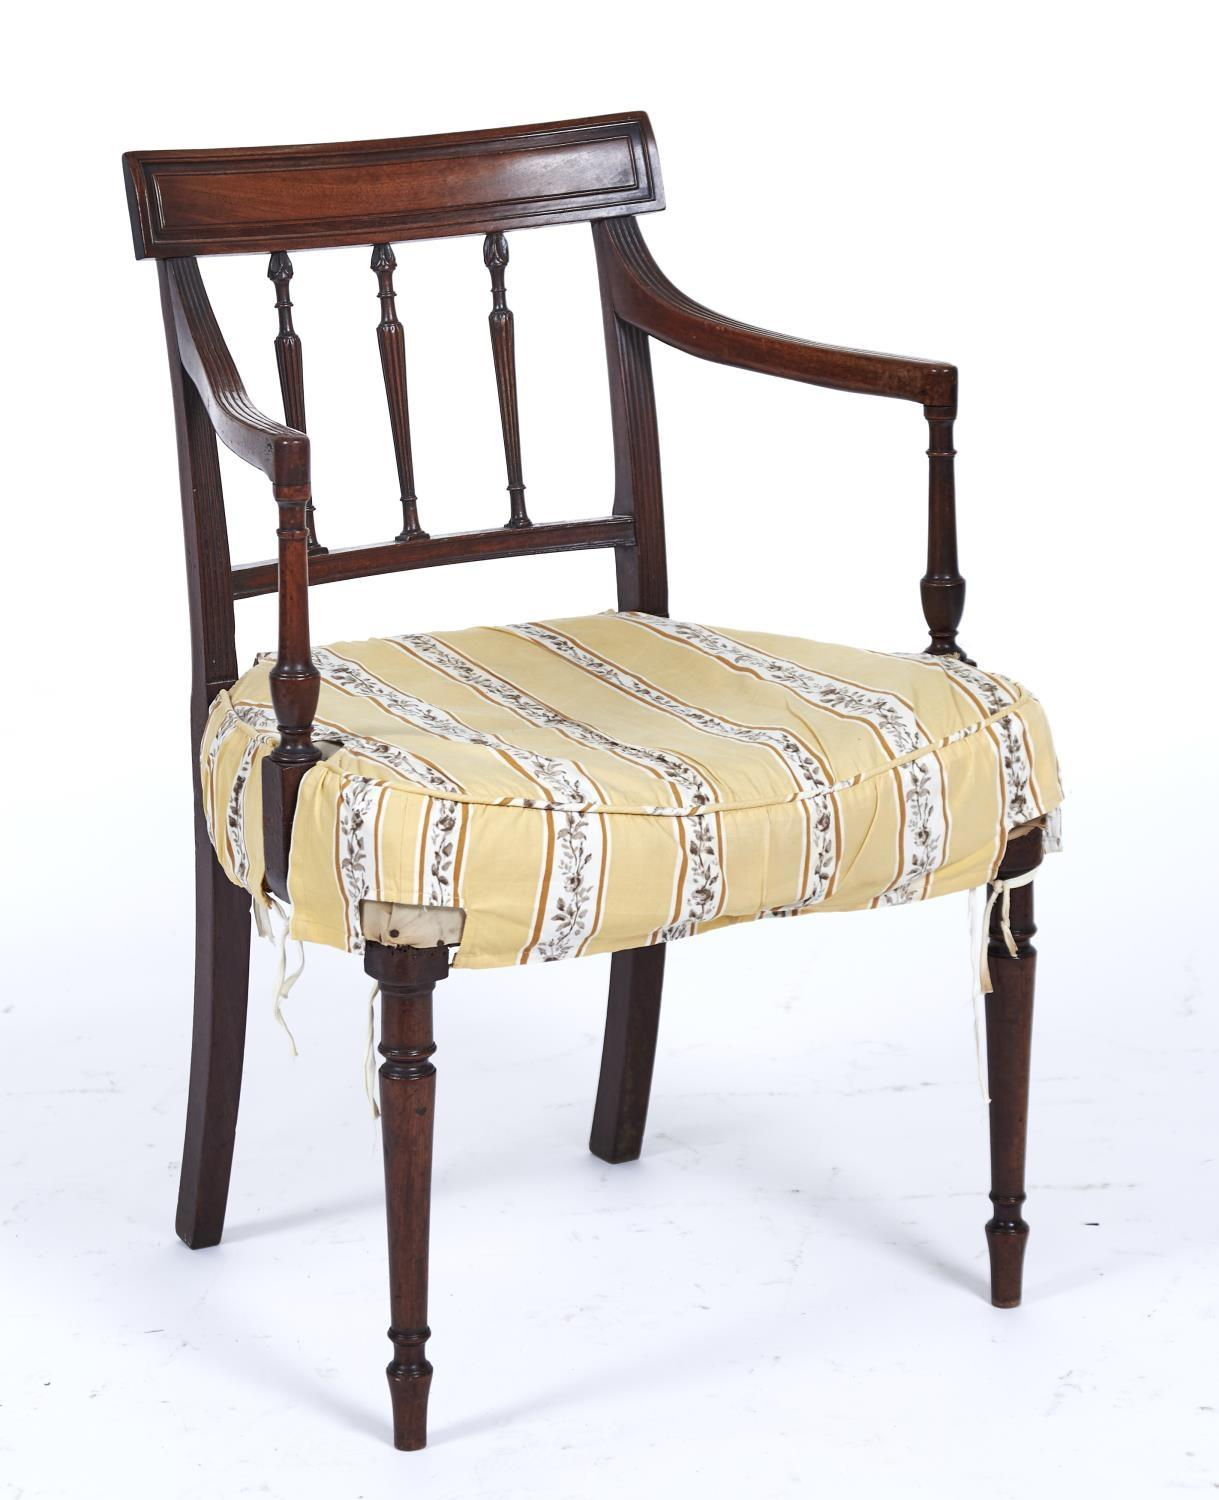 A SET OF SEVEN MAHOGANY SHERATON STYLE DINING CHAIRS, LATE 19TH / EARLY 20TH C, THE PANELLED CONCAVE - Image 2 of 2